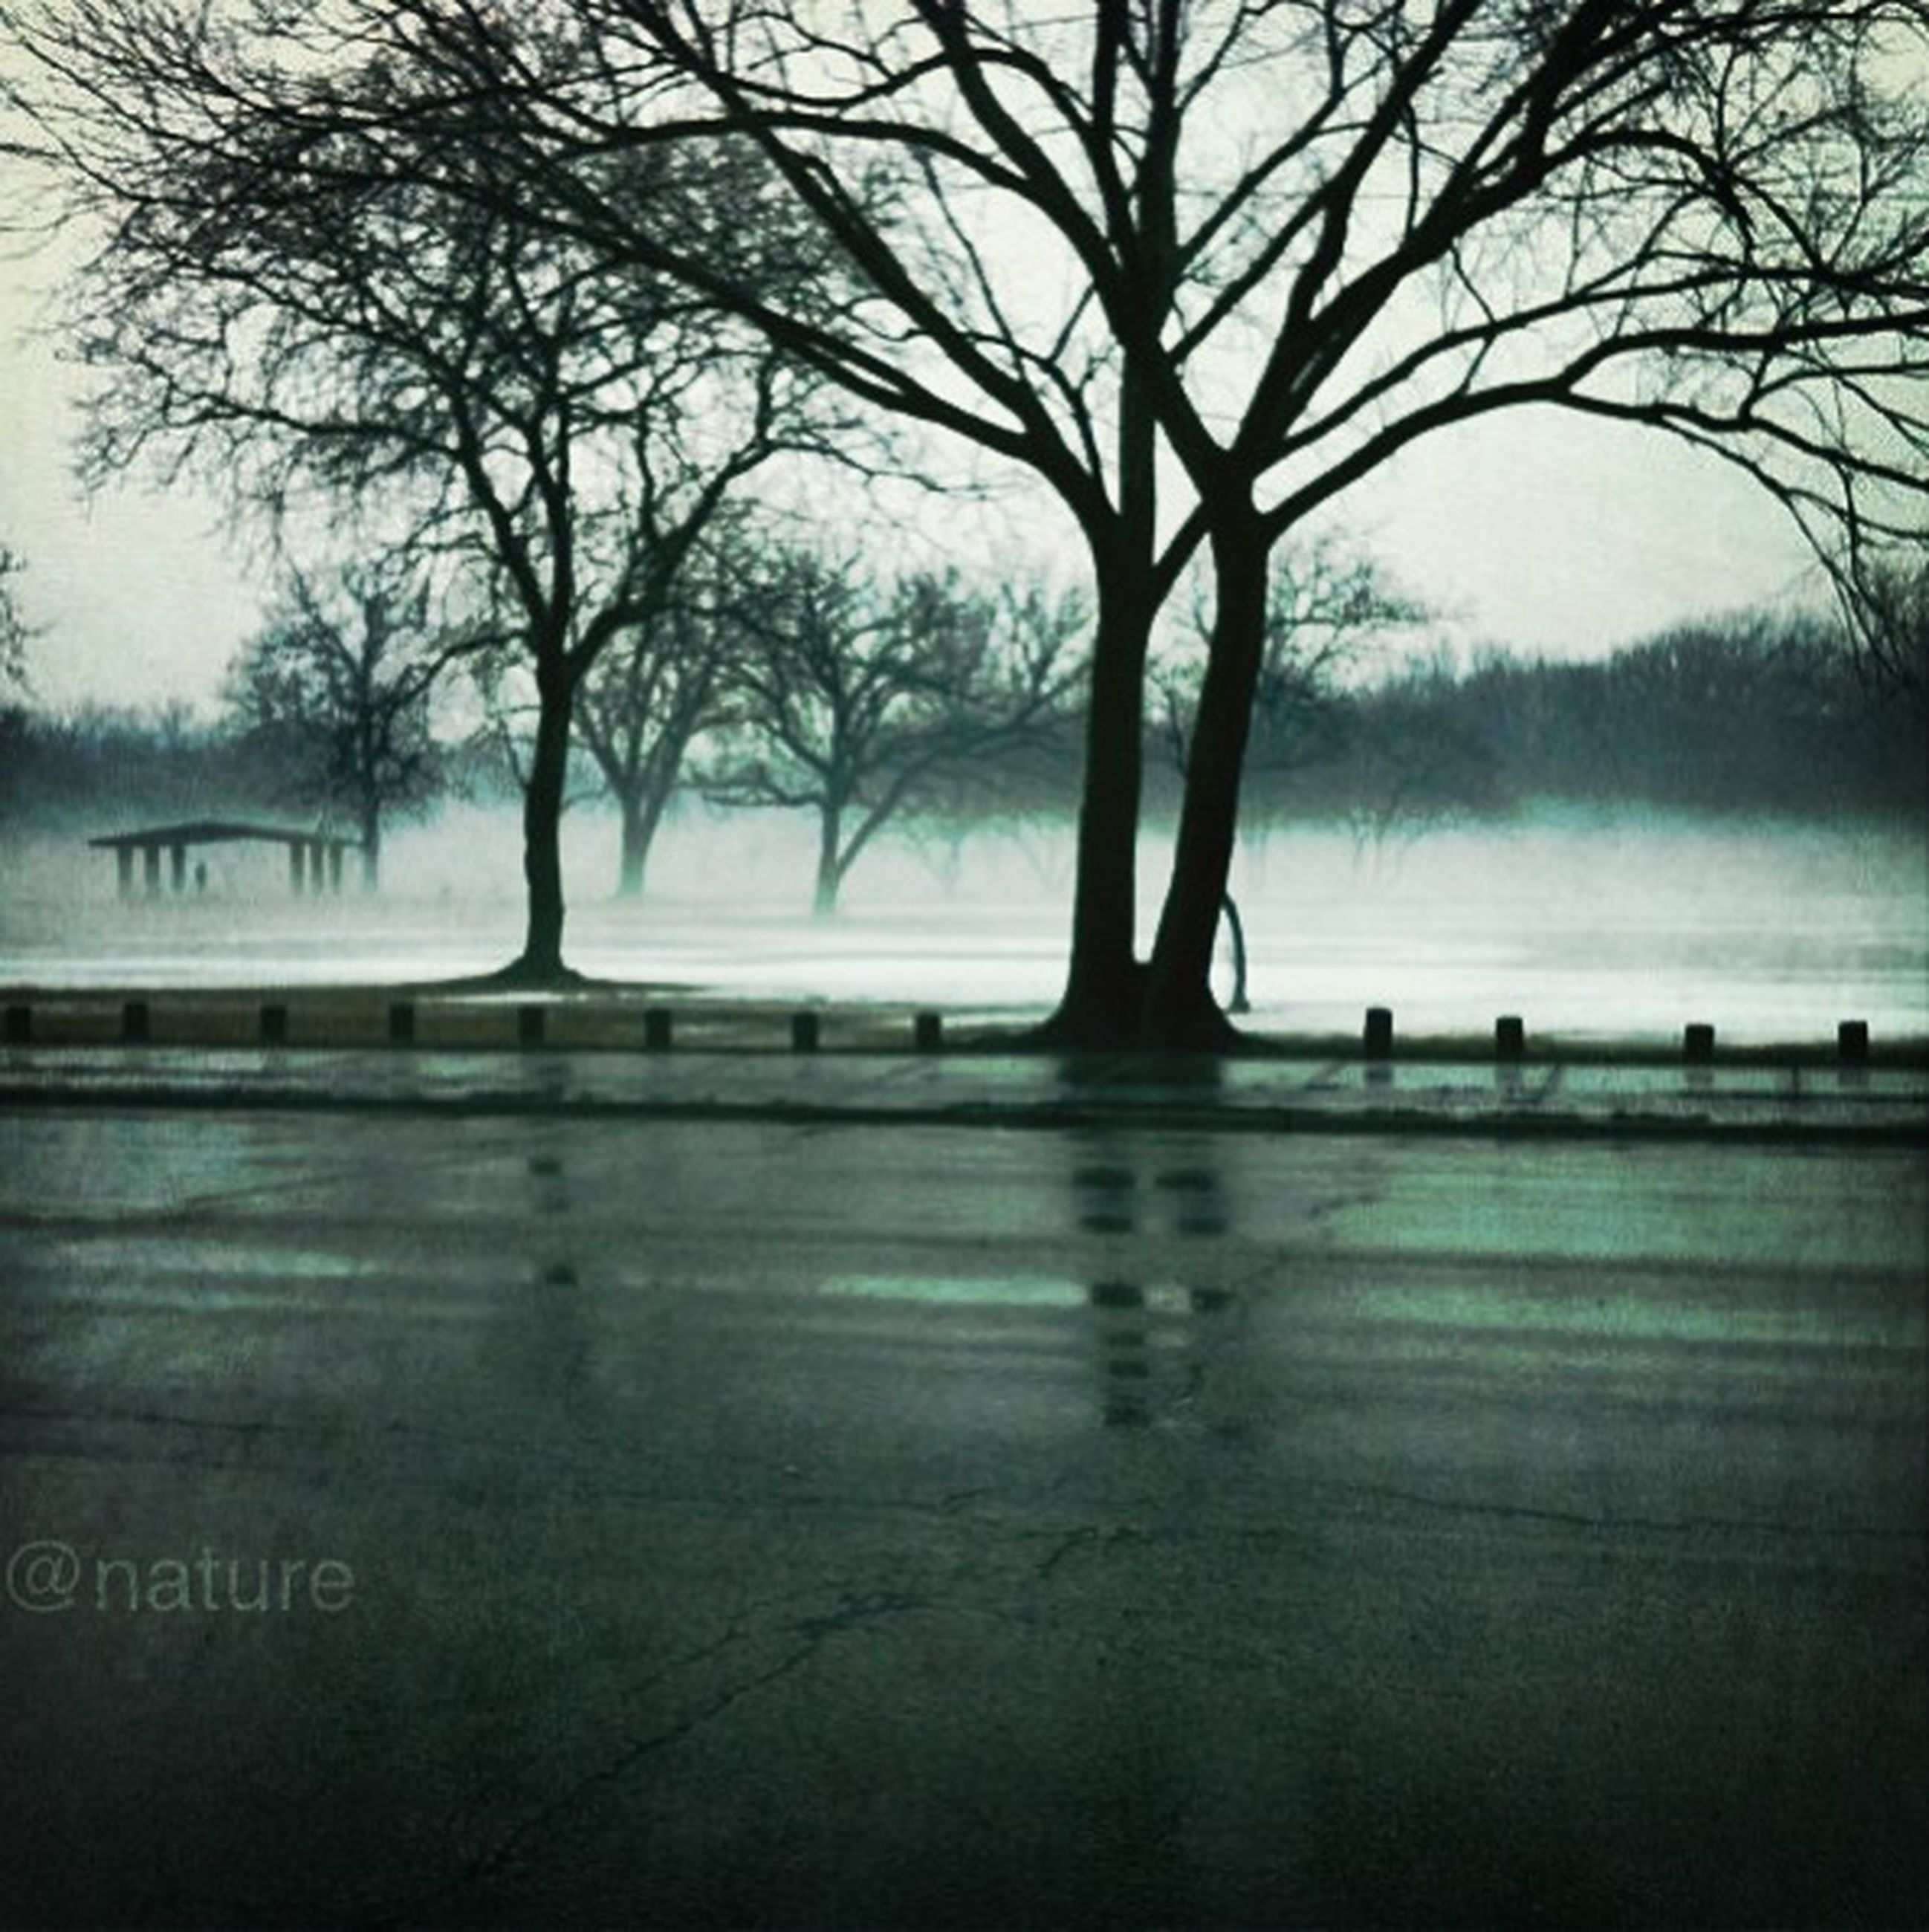 tree, bare tree, water, tranquility, silhouette, tranquil scene, transportation, nature, scenics, branch, road, fog, the way forward, tree trunk, beauty in nature, sky, river, lake, railing, outdoors